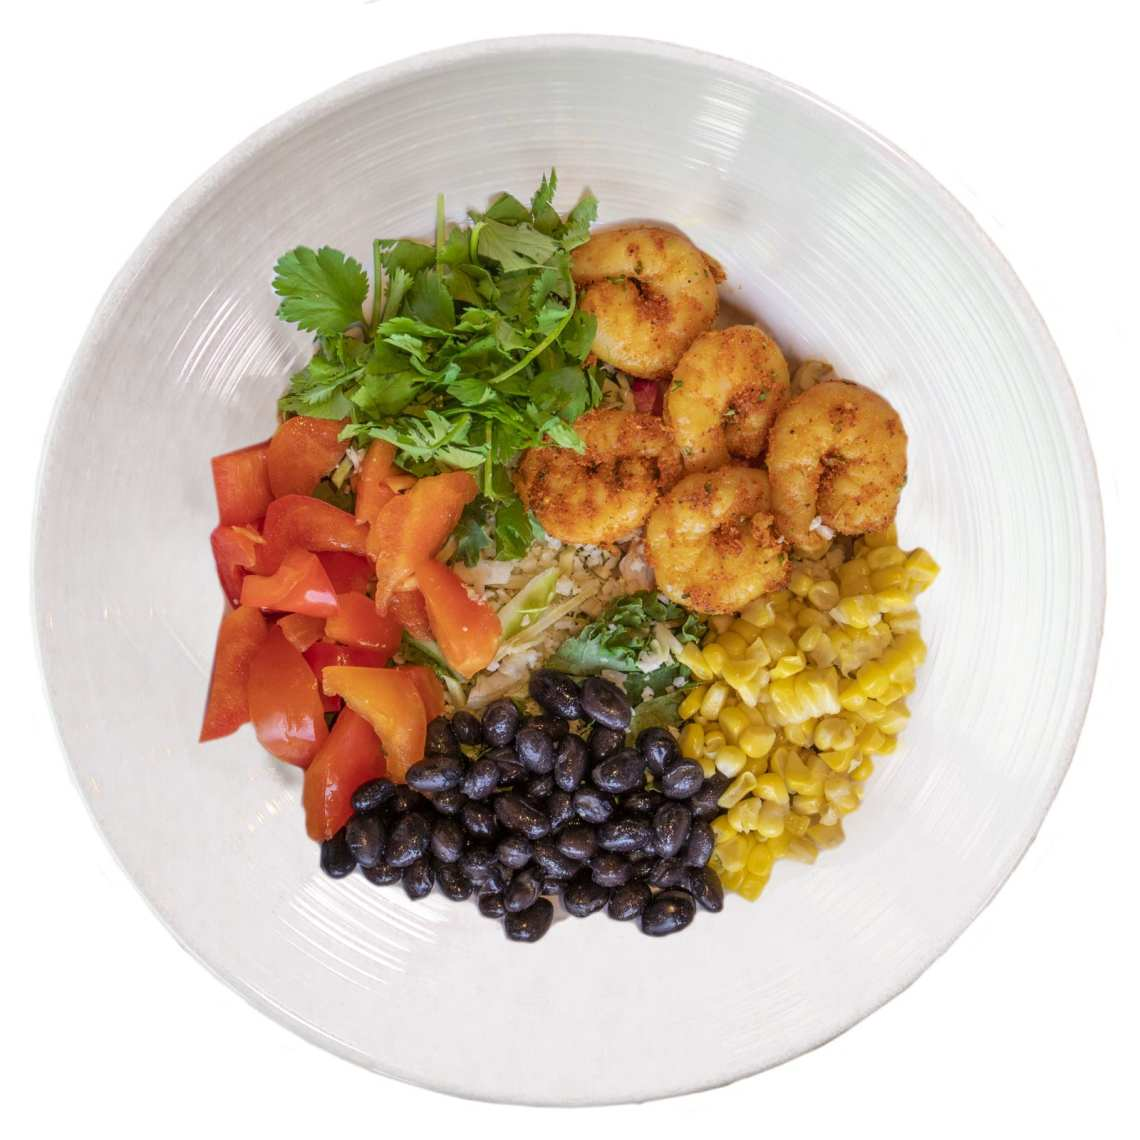 Crushed Red Ensenada Shrimp Crave-A-Bowl